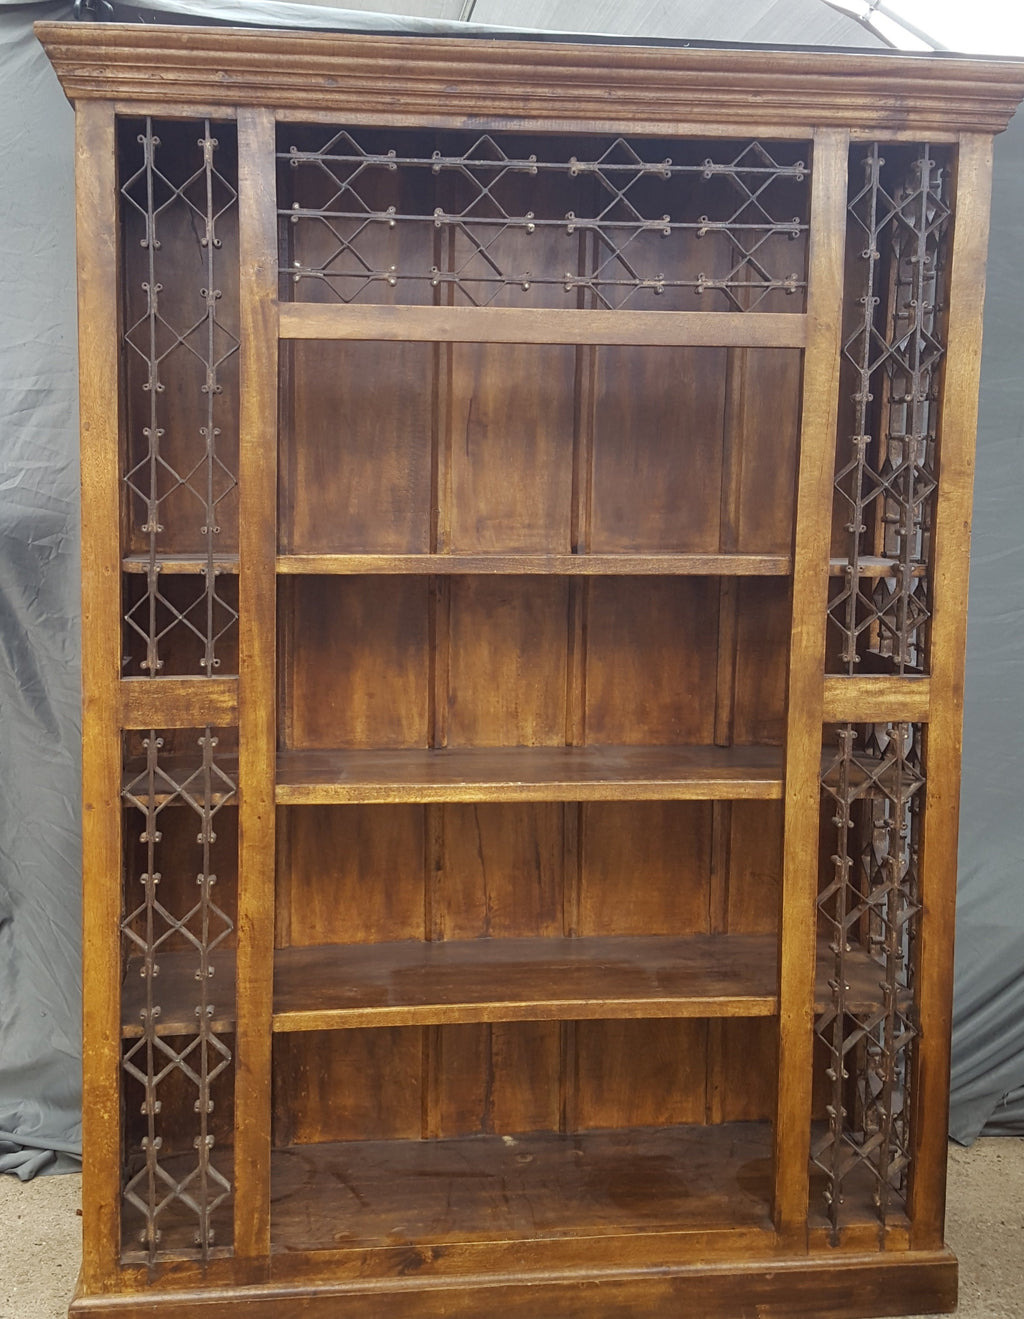 LARGE INDIAN BOOKCASE WITH GREAT IRON EMBELLISHMENTS